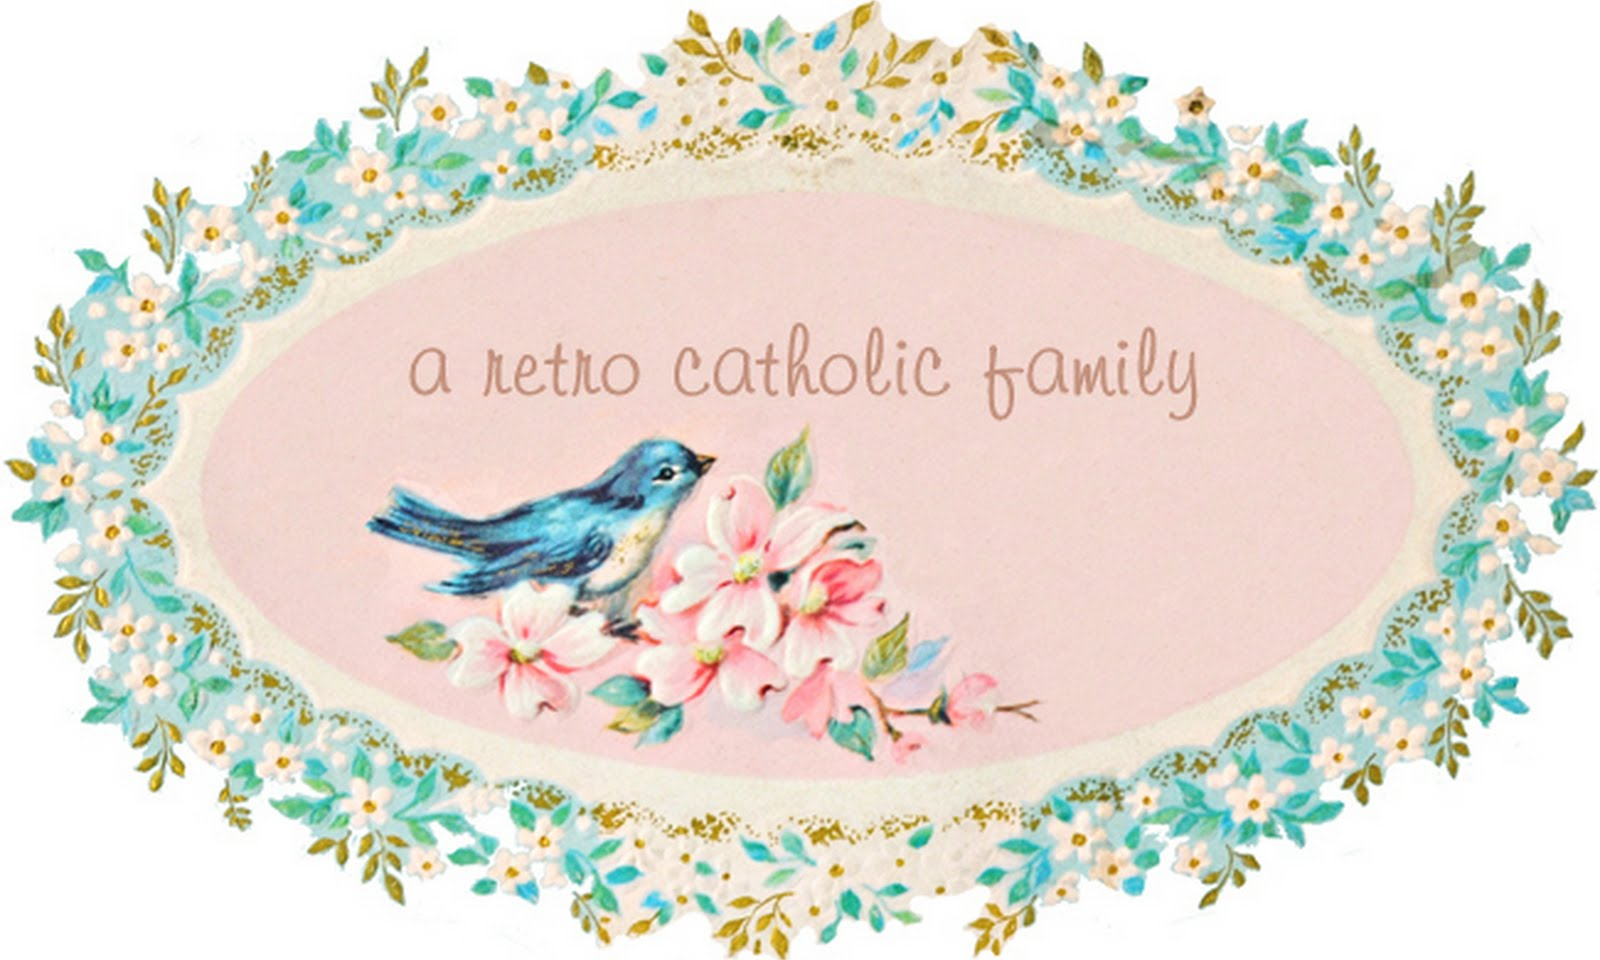 a retro Catholic family